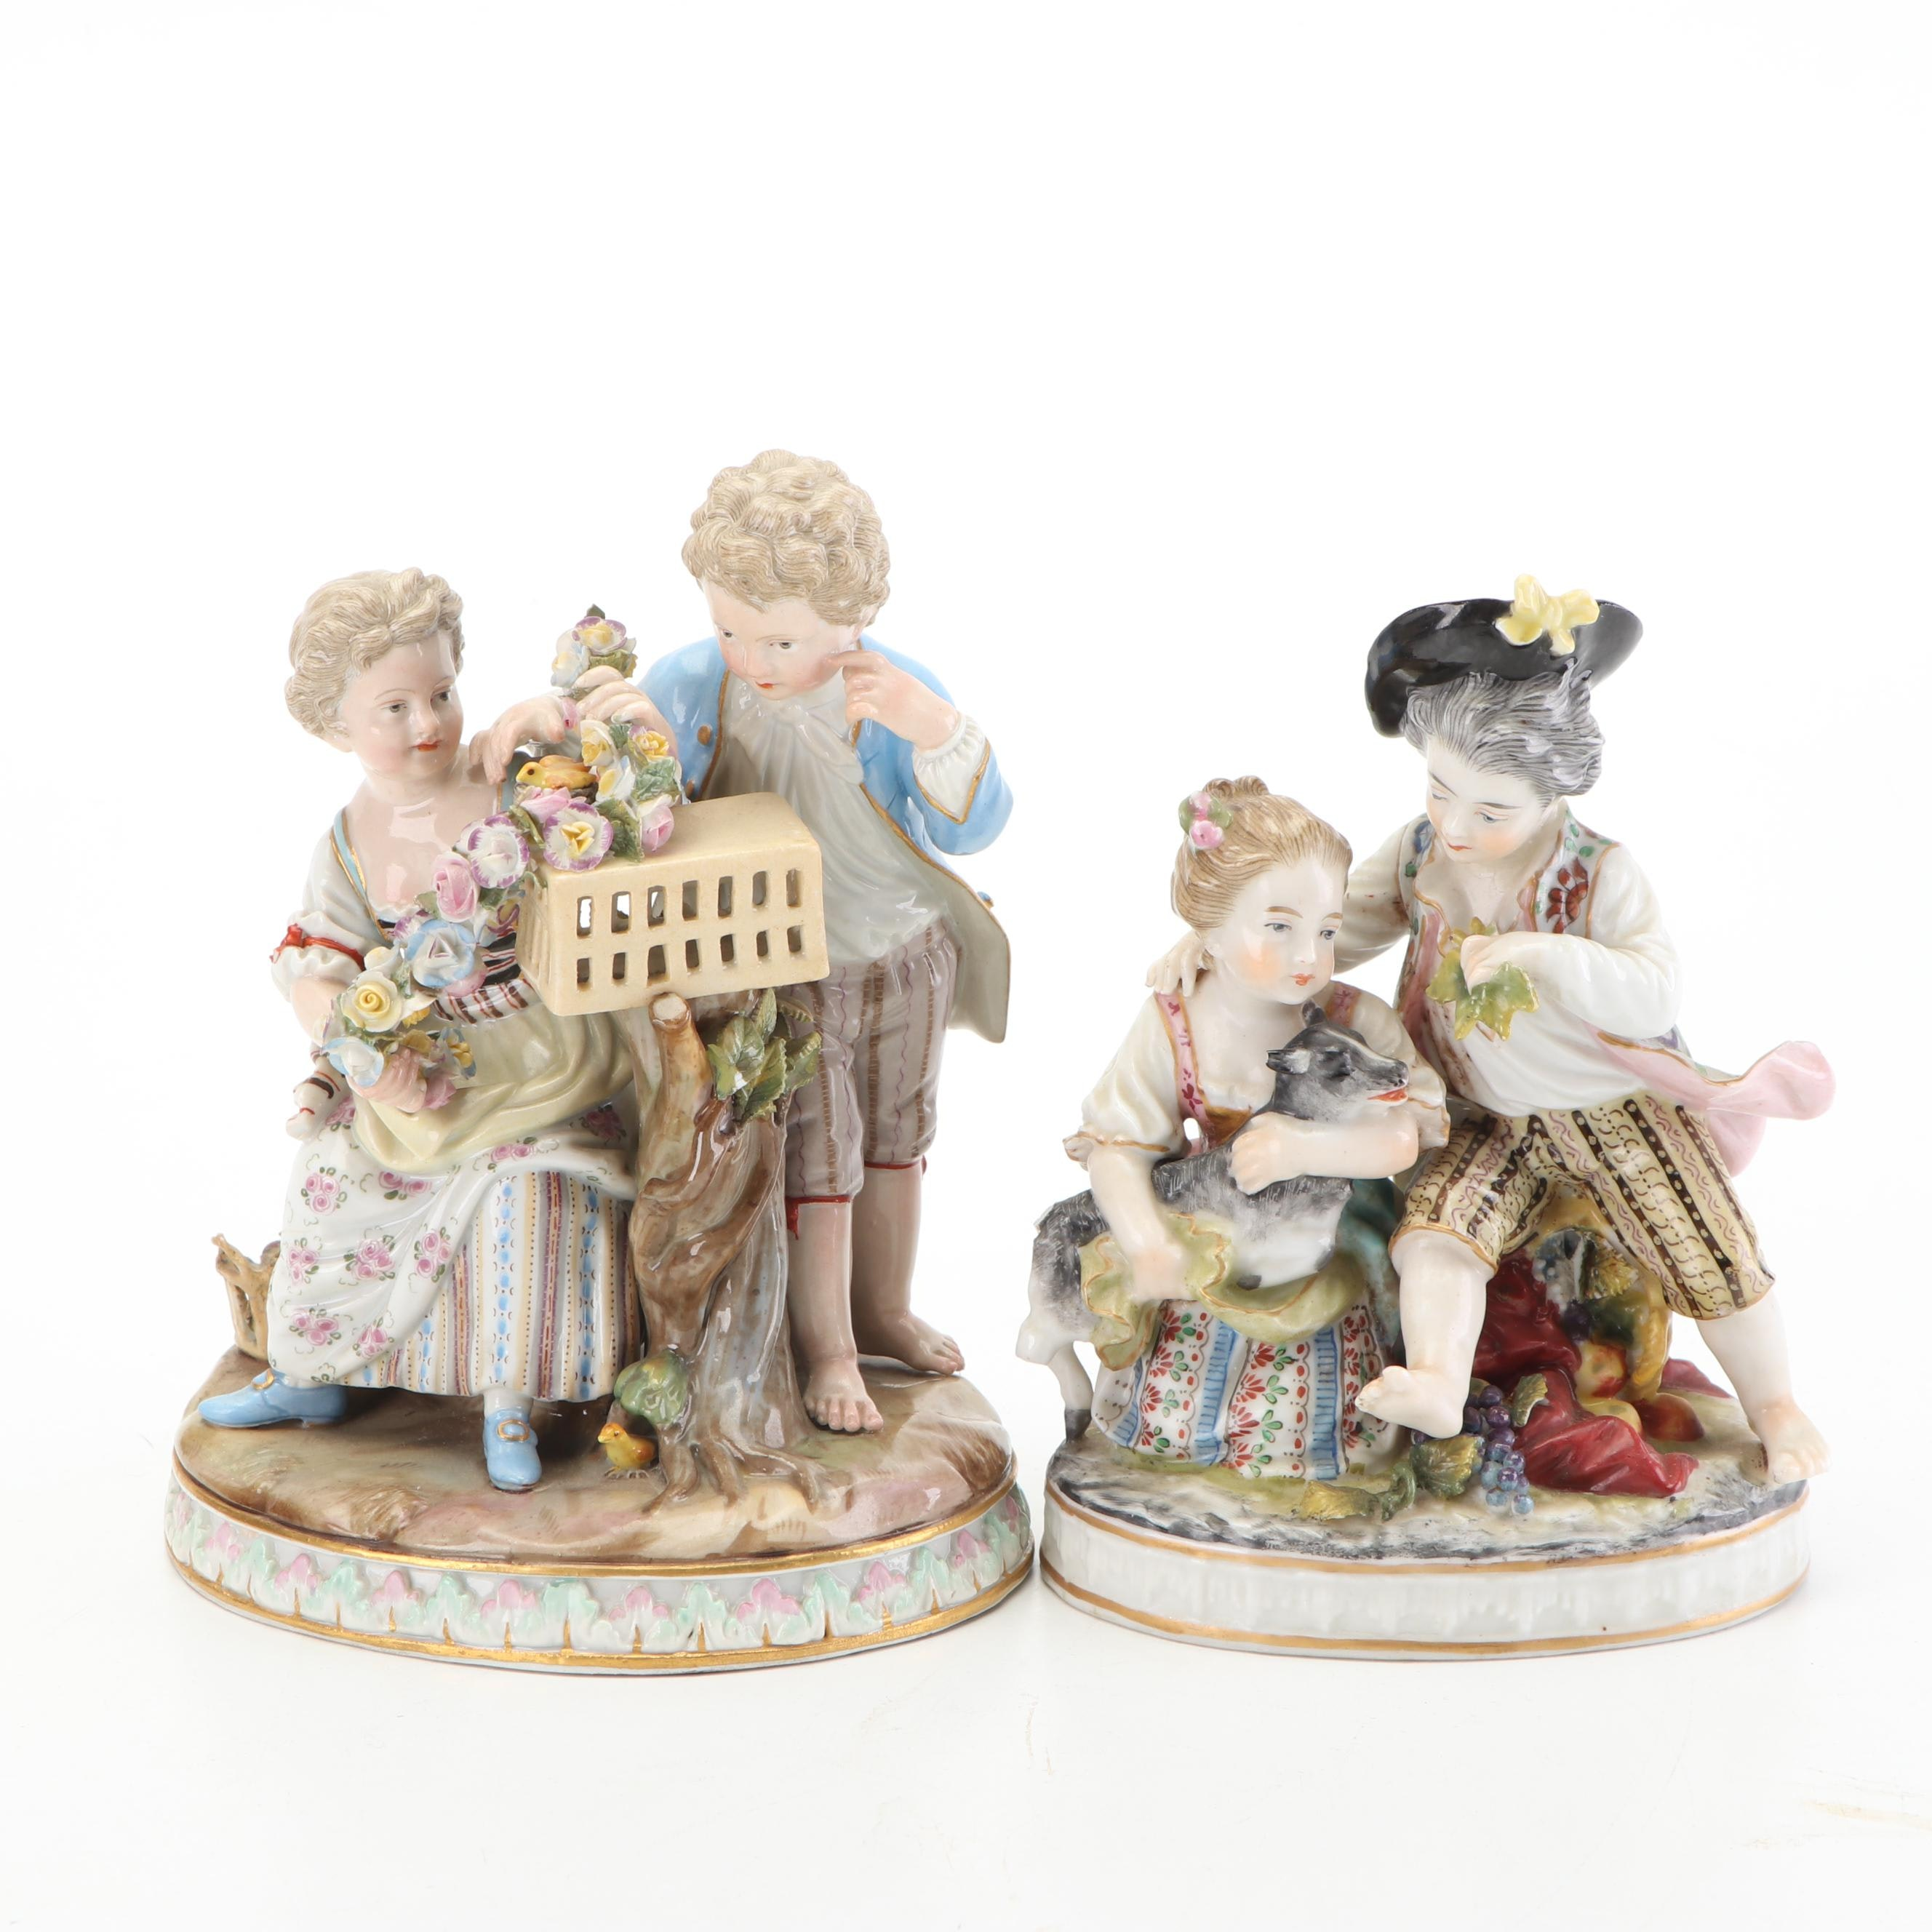 Porcelain Figurines of Young Couples Featuring Meissen